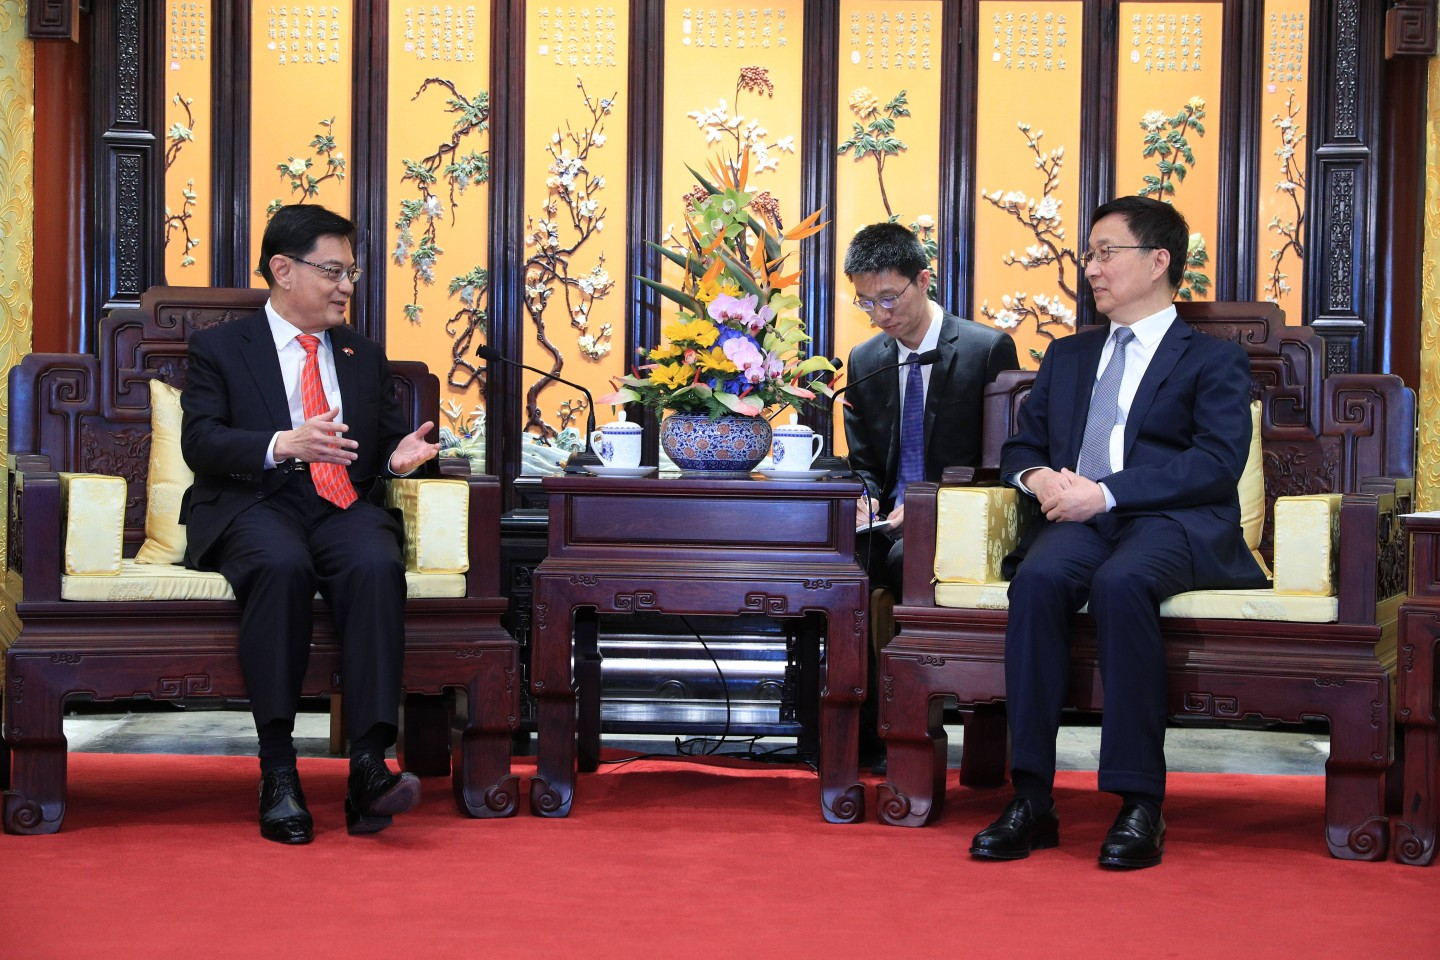 DPM's meeting with PRC Vice-Premier Han Zheng in May 2019, in Beijing, China. (MCI)